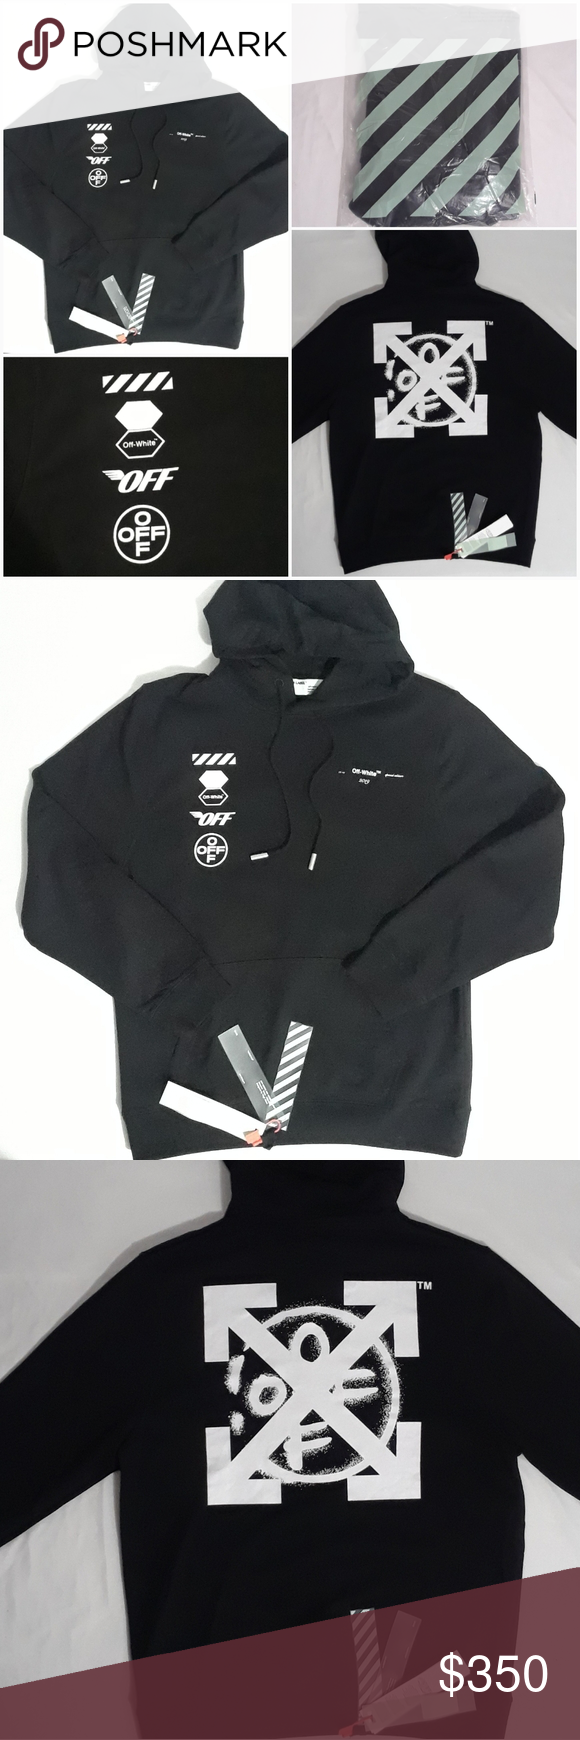 Sale Off White Arrows Hoodie Sweatshirt Black Brand New With Tags Includes Official Off Whi White Sweatshirt Hoodie Black Hoodie Black Sweatshirt Hoodie